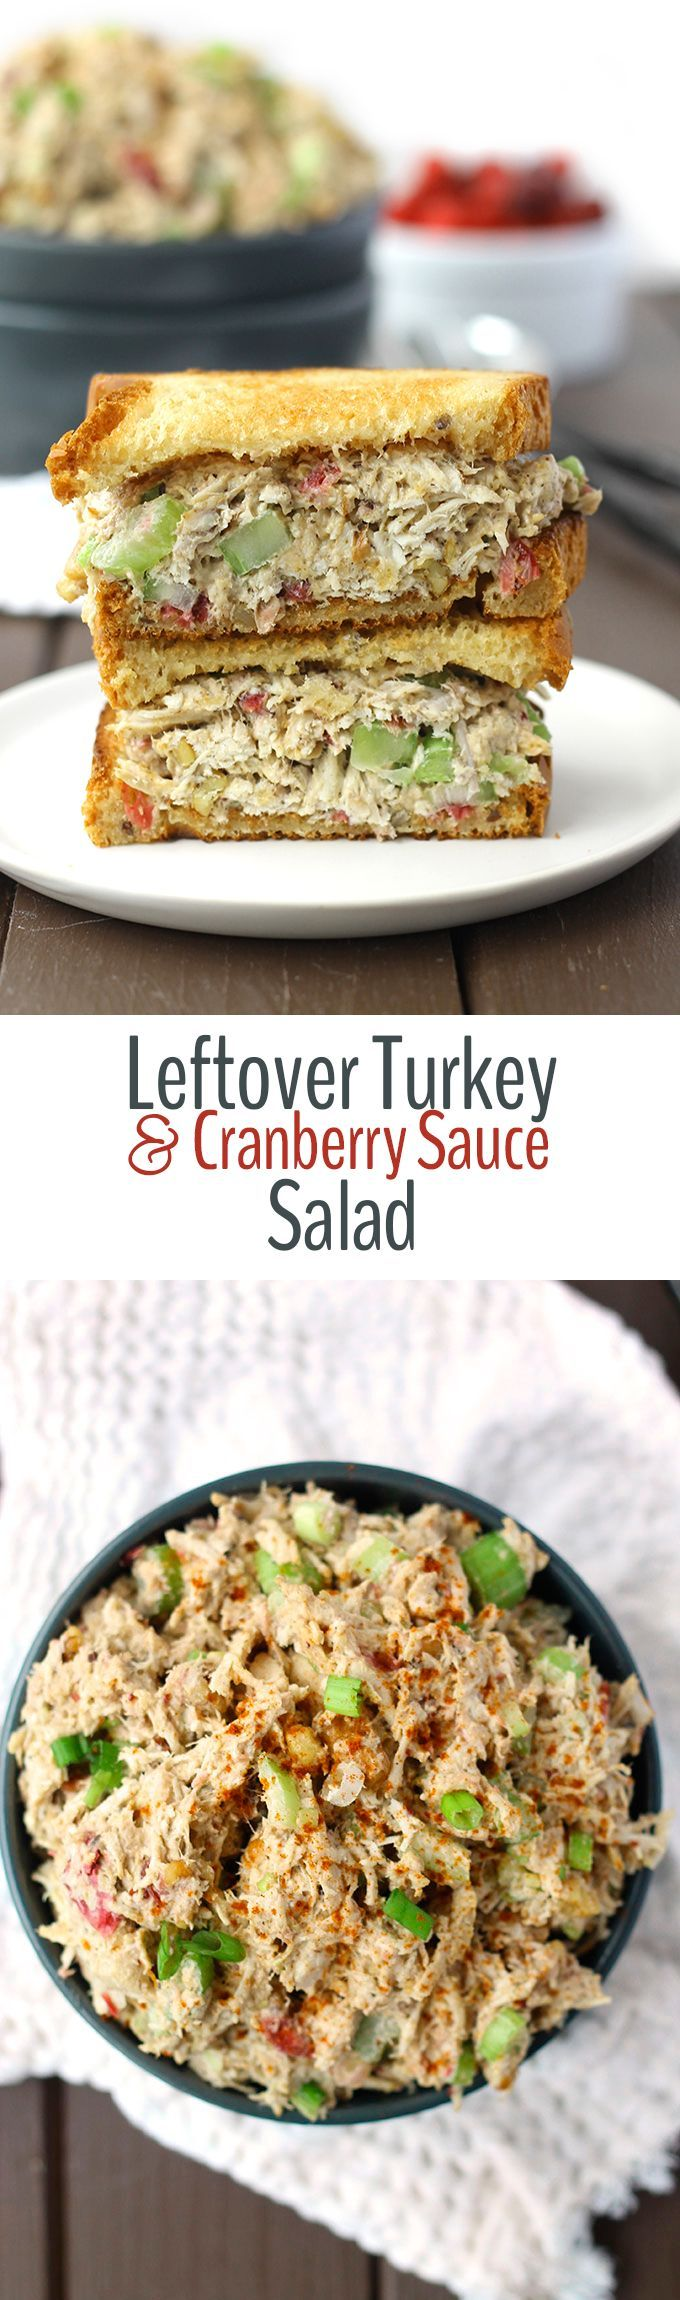 100+ Leftover Turkey Recipes Turkey Recipes